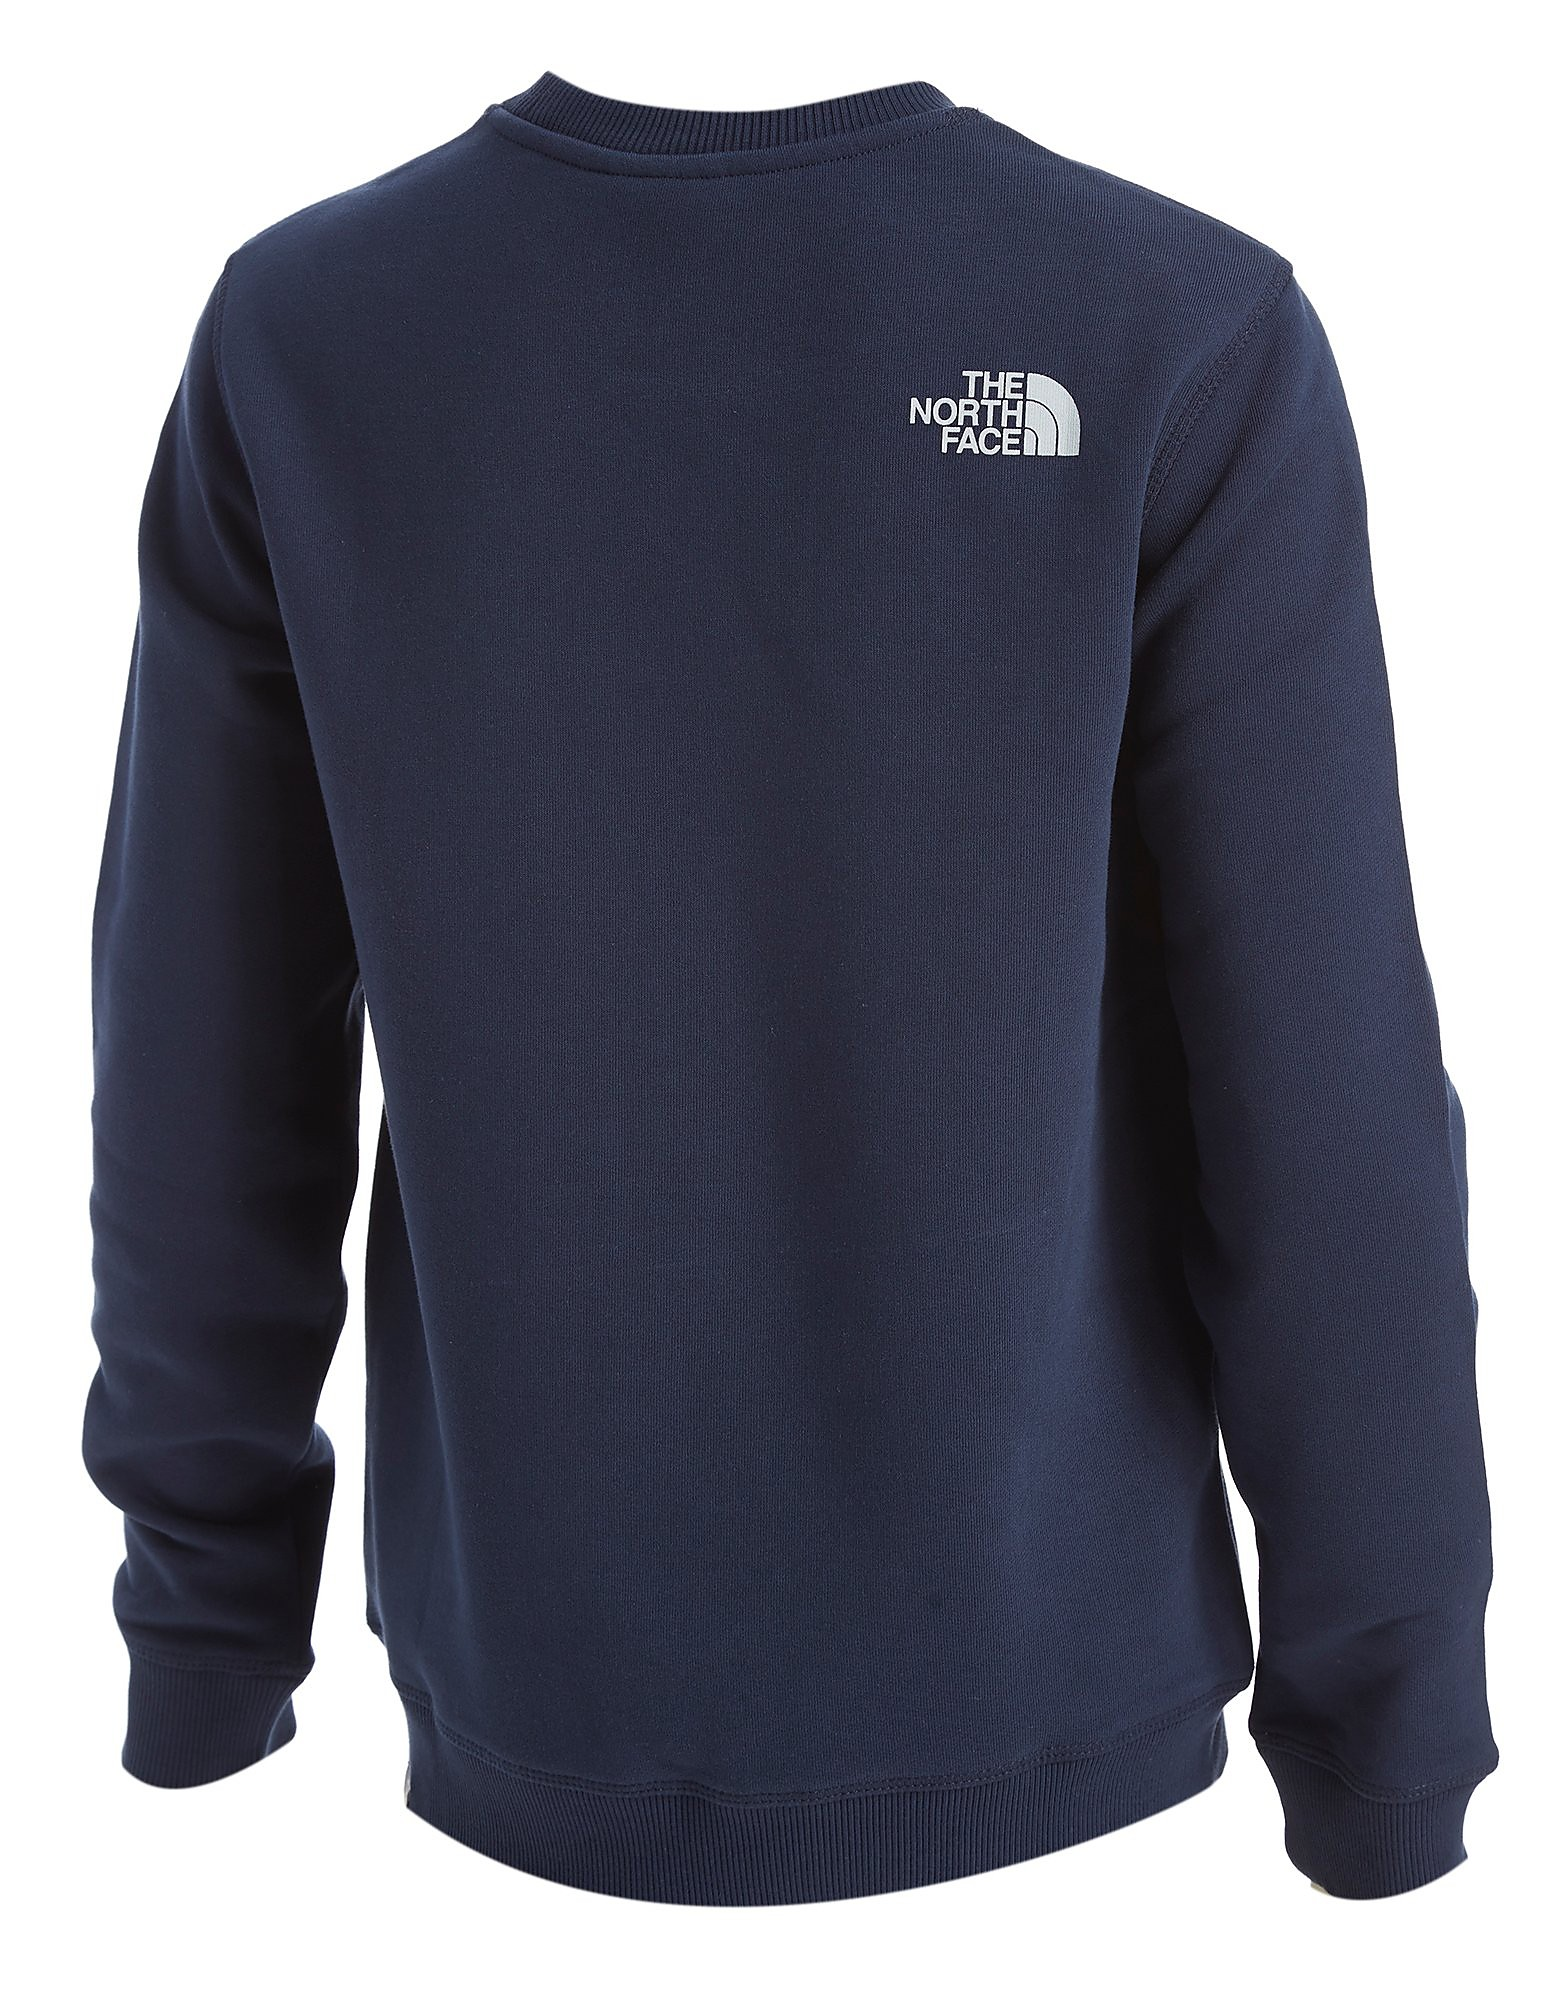 The North Face Box Logo Crew Sweatshirt Junior